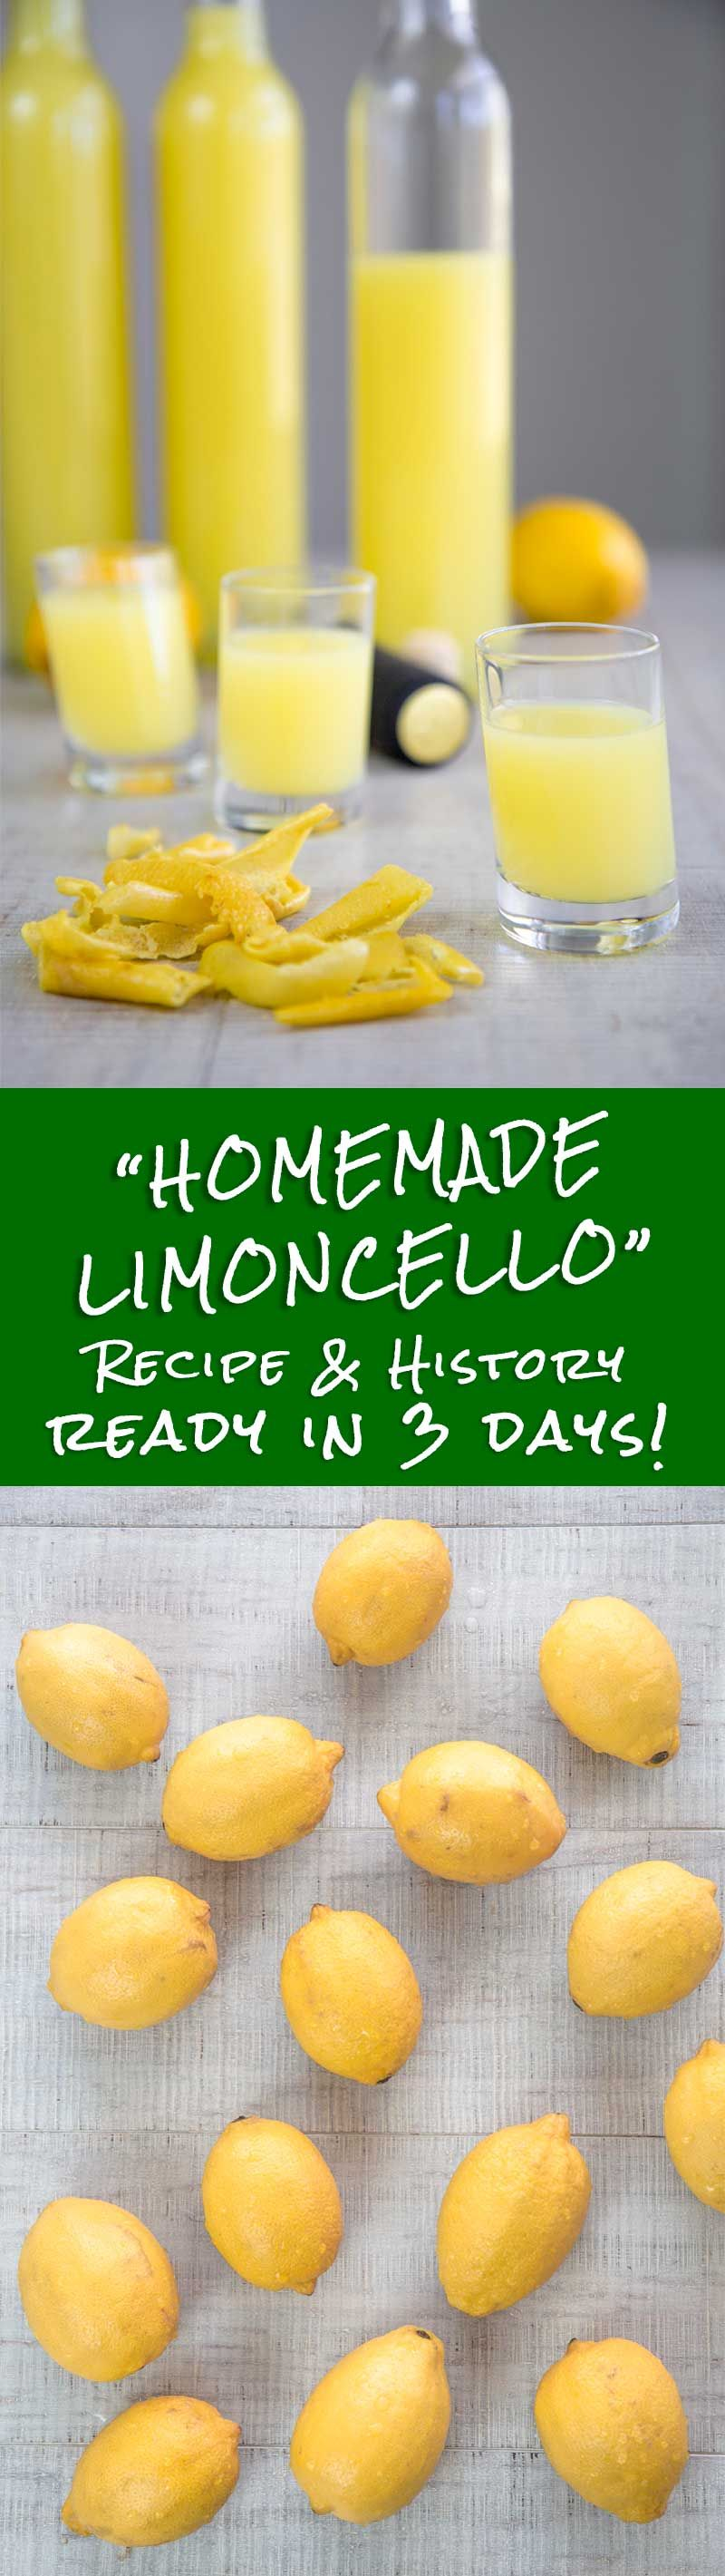 Homemade Limoncello Recipe And History Ready In 3 Days Recipe Homemade Limoncello Limoncello Recipe Italian Recipes